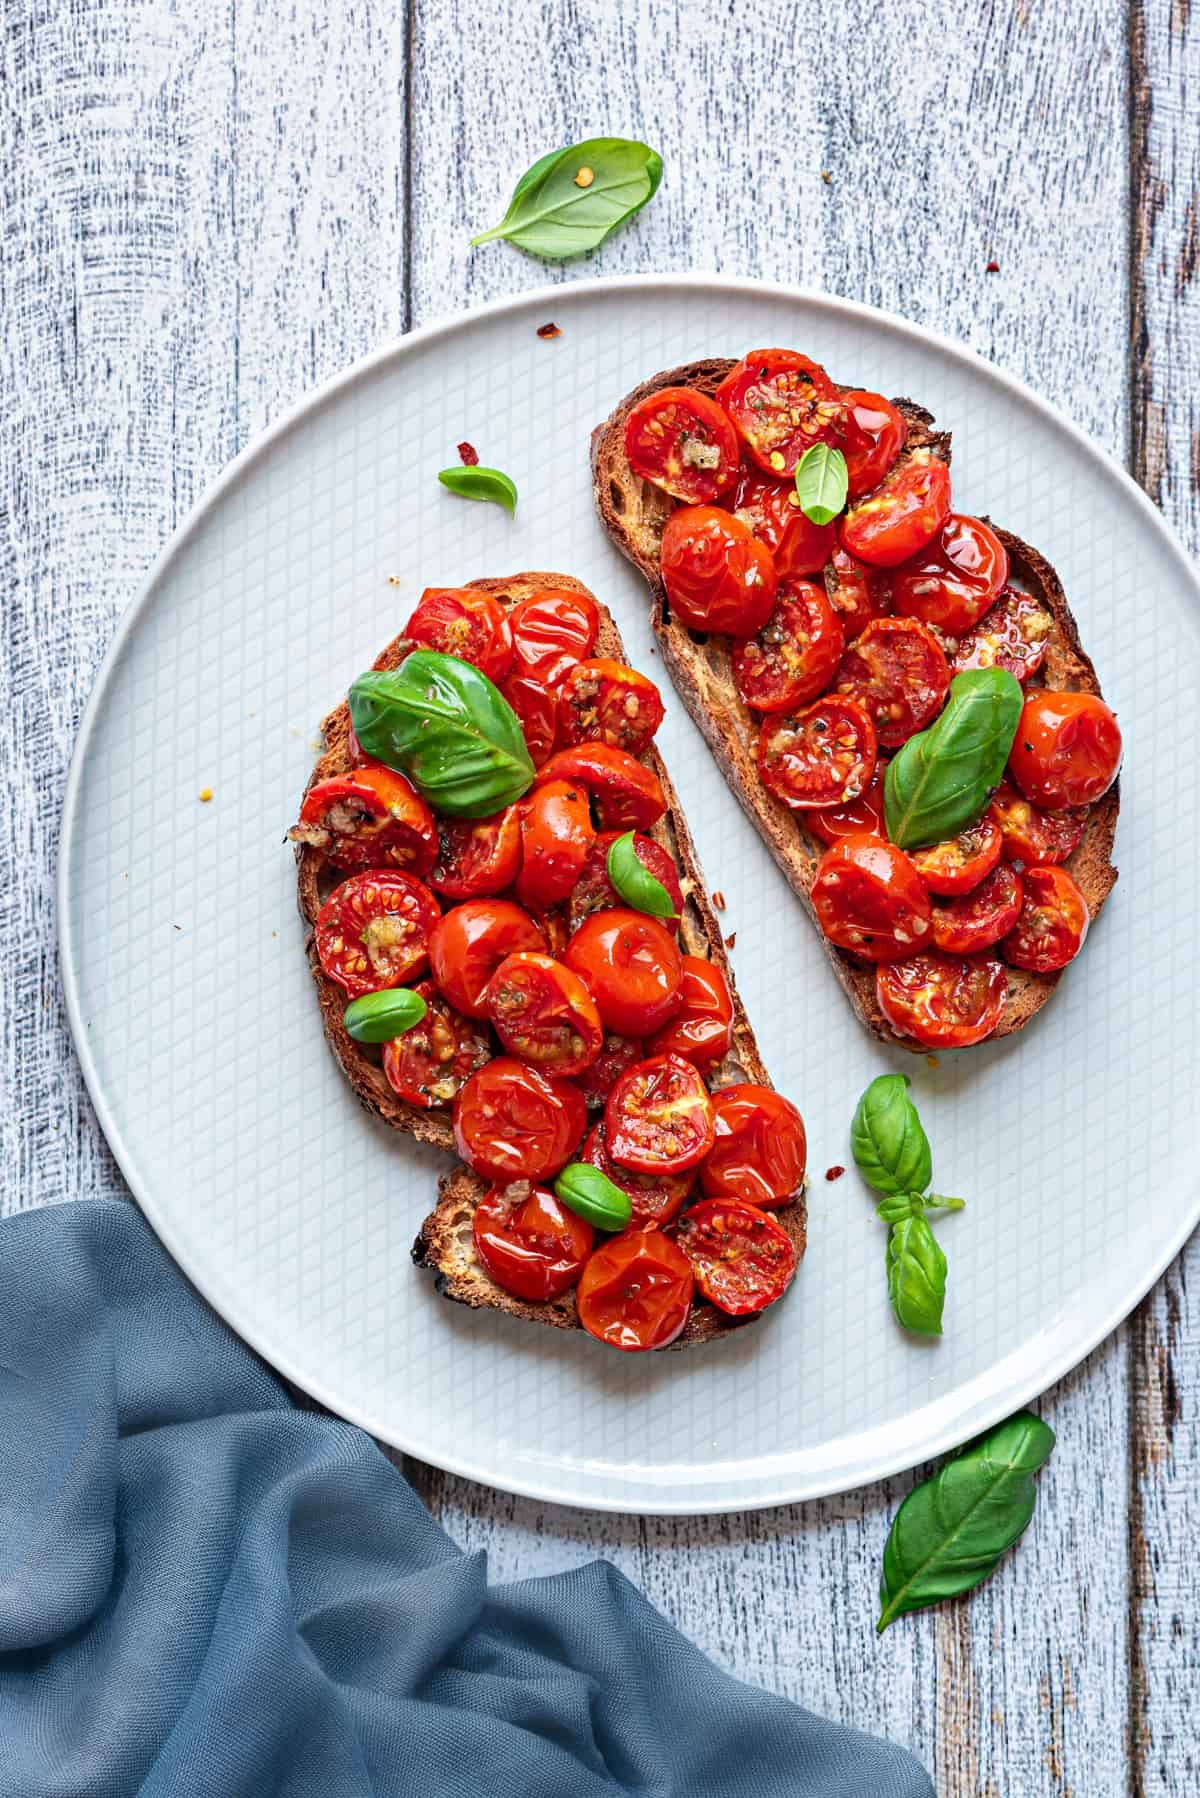 roasted cherry tomatoes on two pieces of toast and garnished with fresh basil leaves